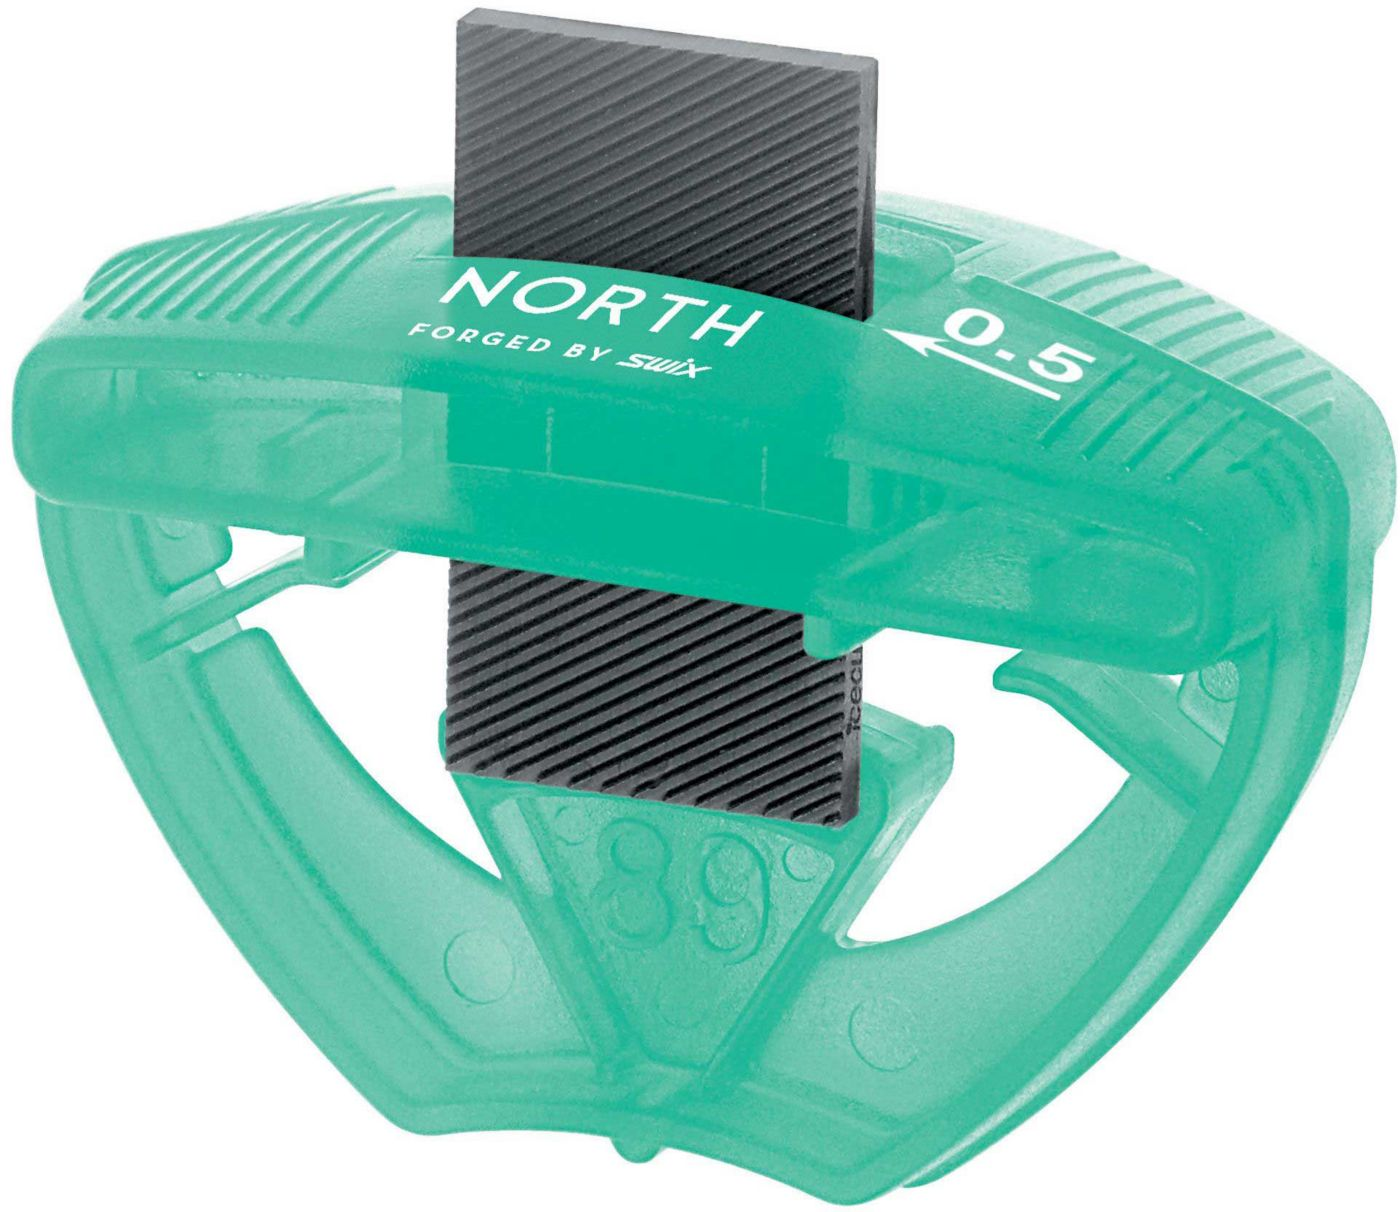 North by Swix Pocket Edge Sharpener